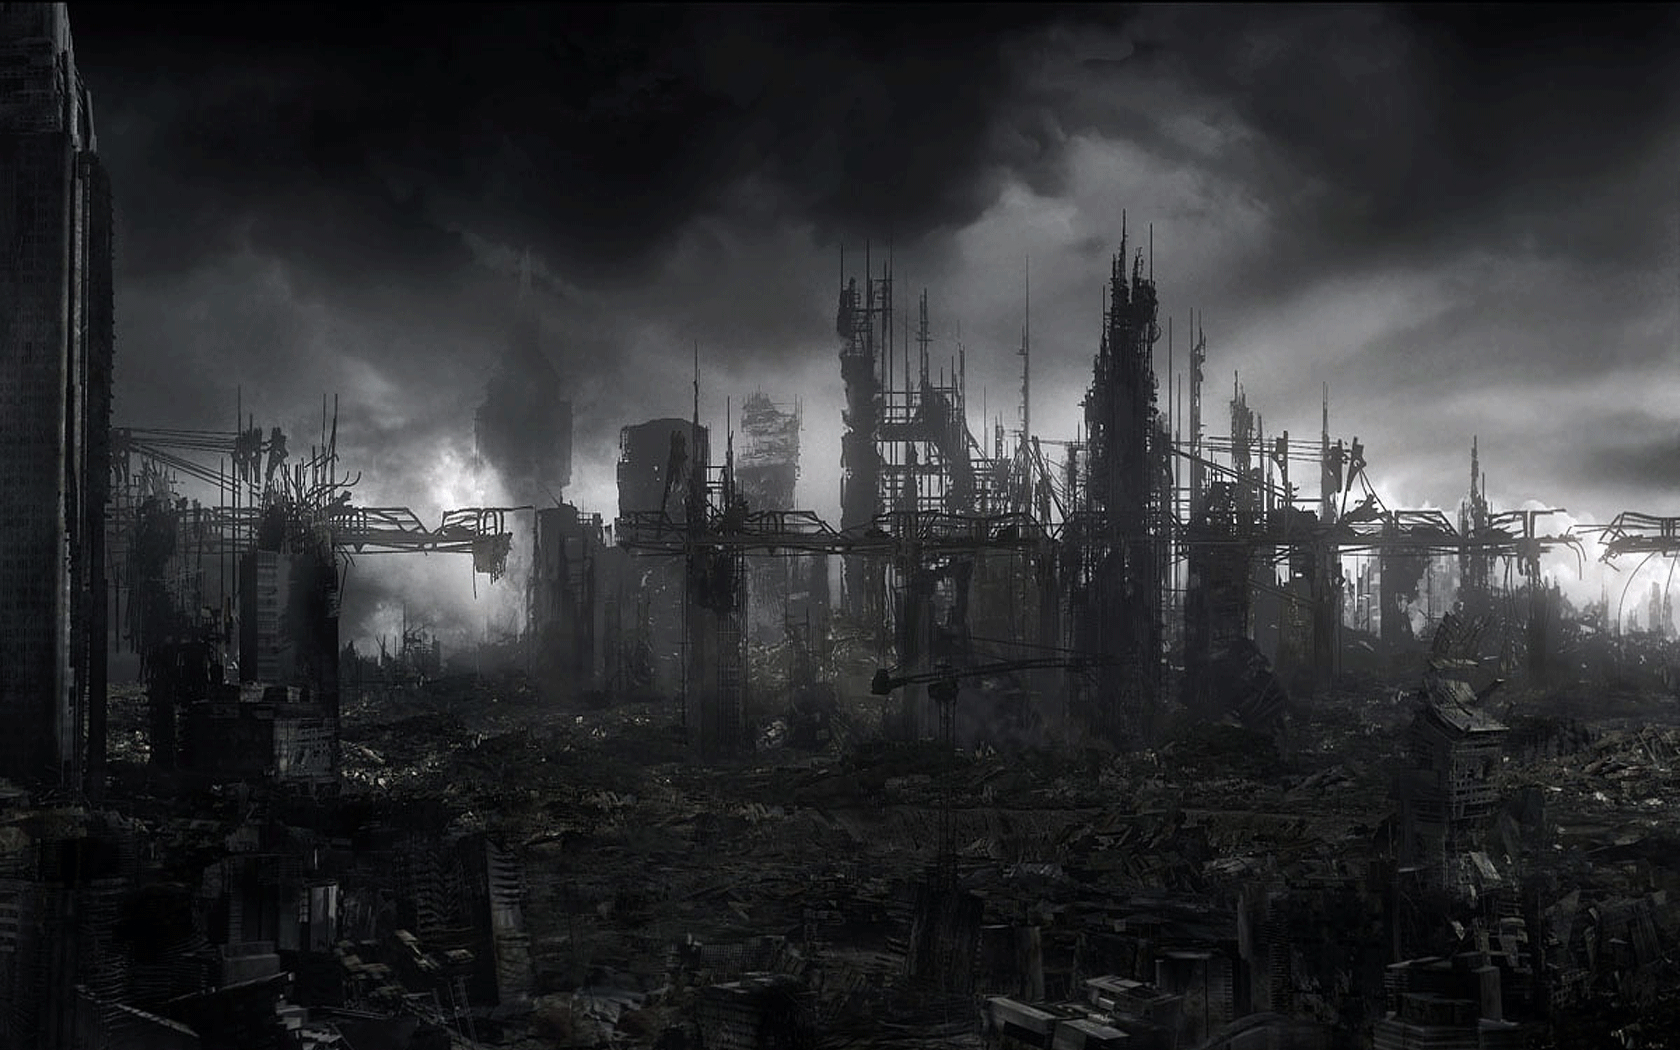 cityscapes post-apocalyptic artwork City HD Wallpaper